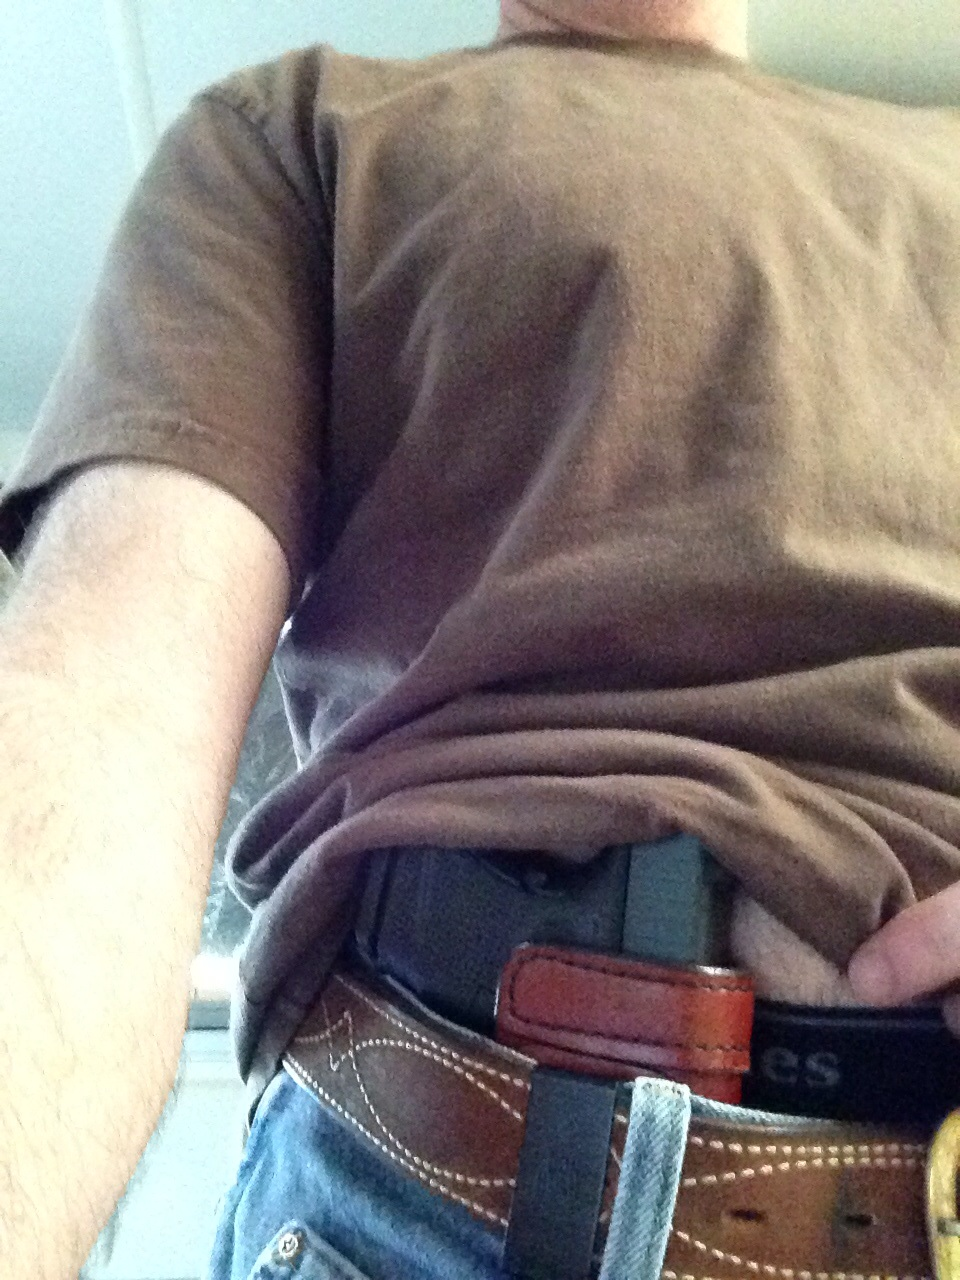 Thoughts on IWB carry-image.jpg